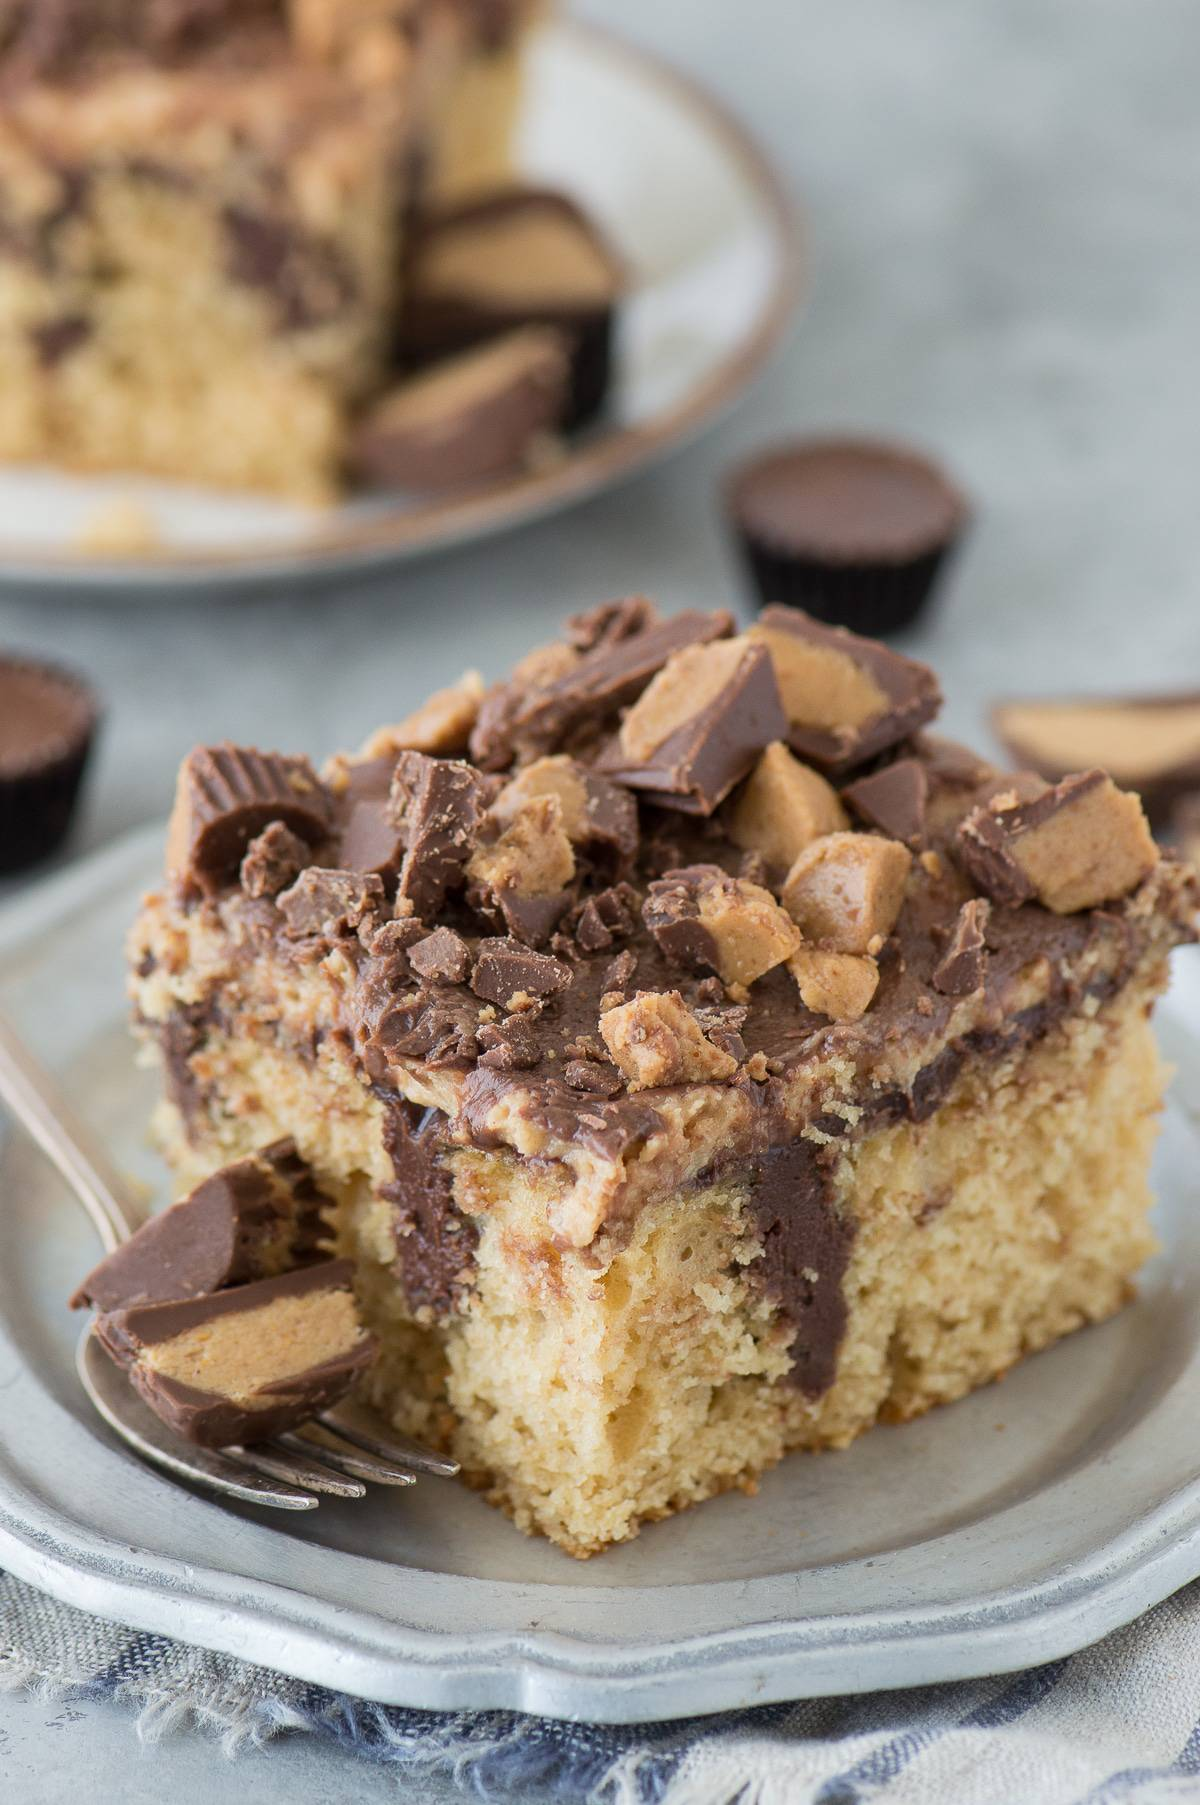 Peanut Butter Chocolate Poke Cake The First Year